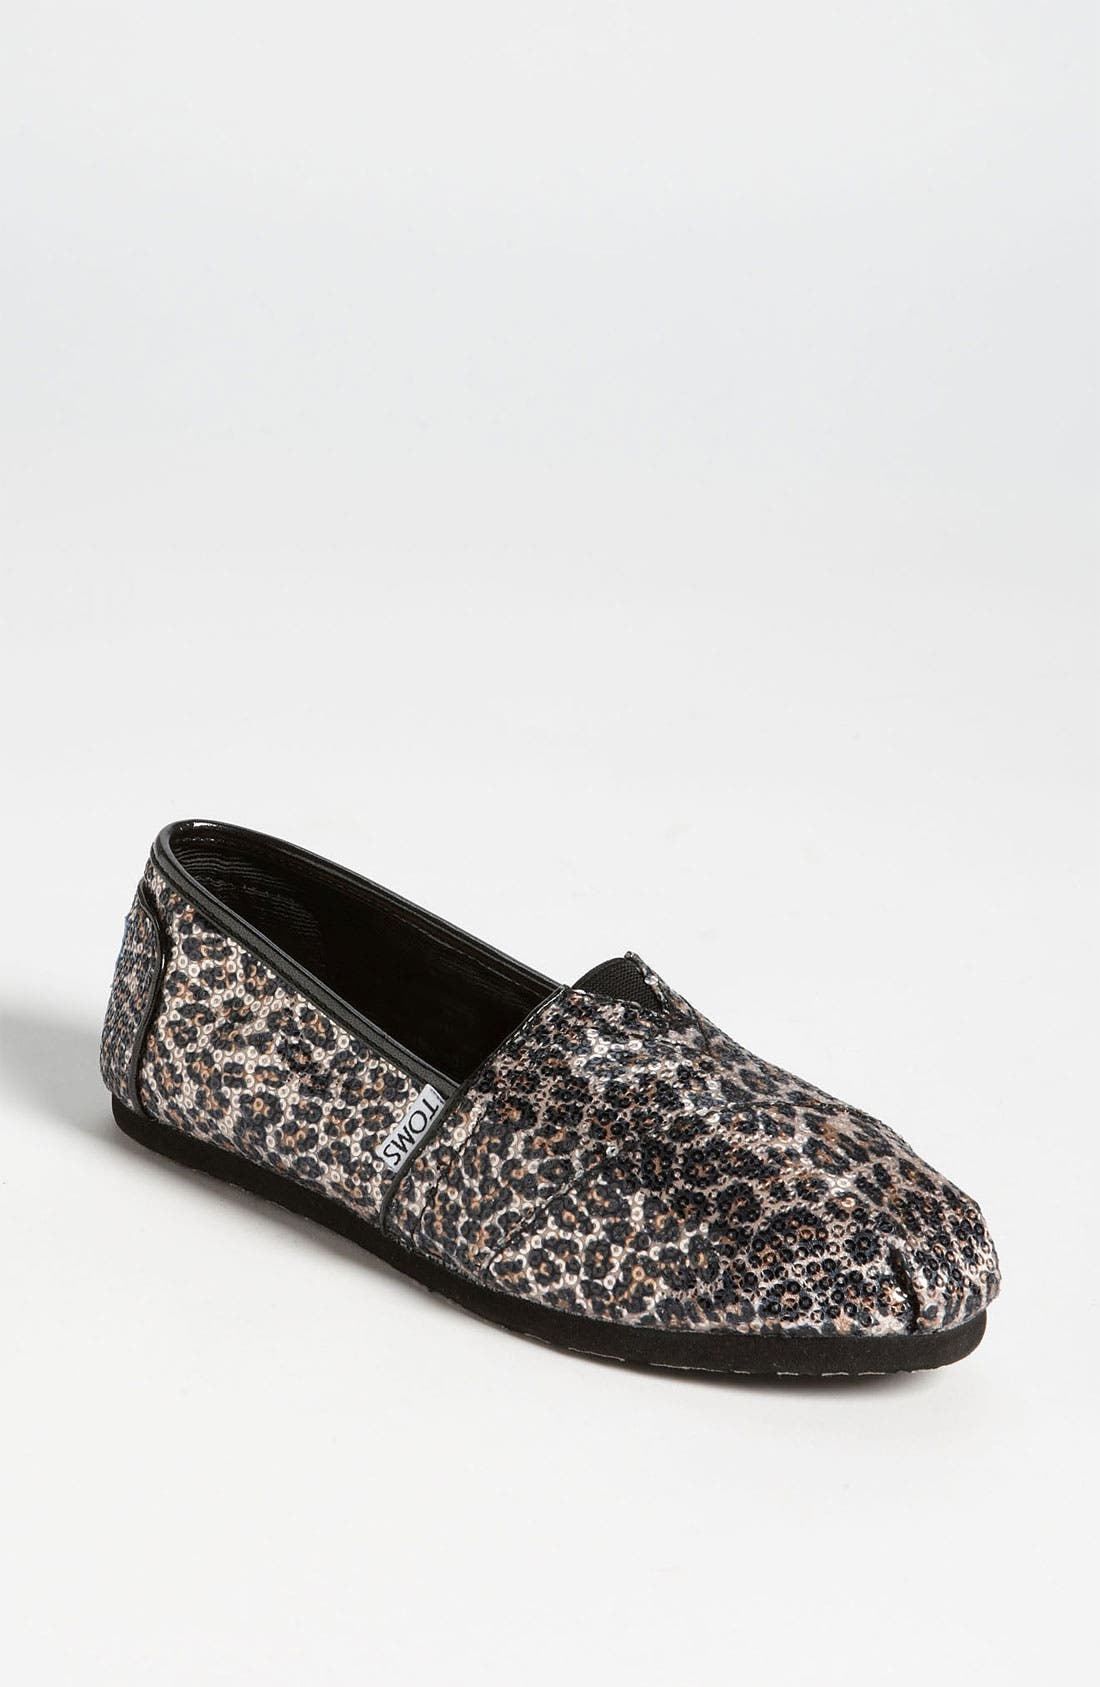 Main Image - TOMS 'Classic Panthera - Sequins' Slip-On (Women) (Nordstrom Exclusive)